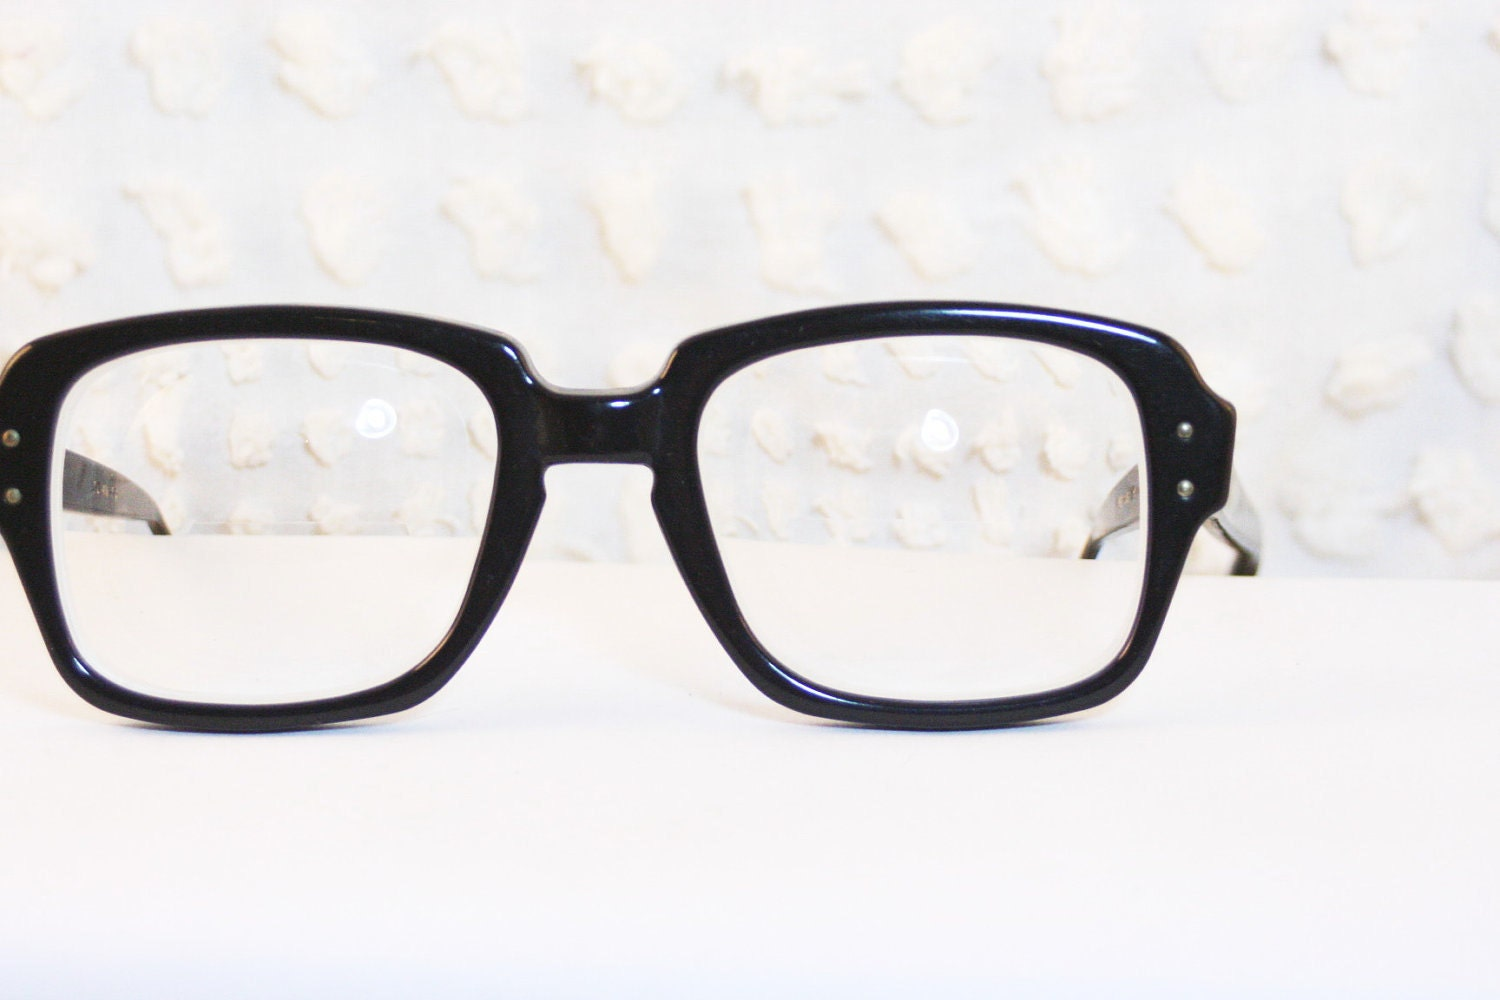 Eyeglass Frames For Military : Black Military Horn Rim 1990s Eyeglasses Army Navy by ...